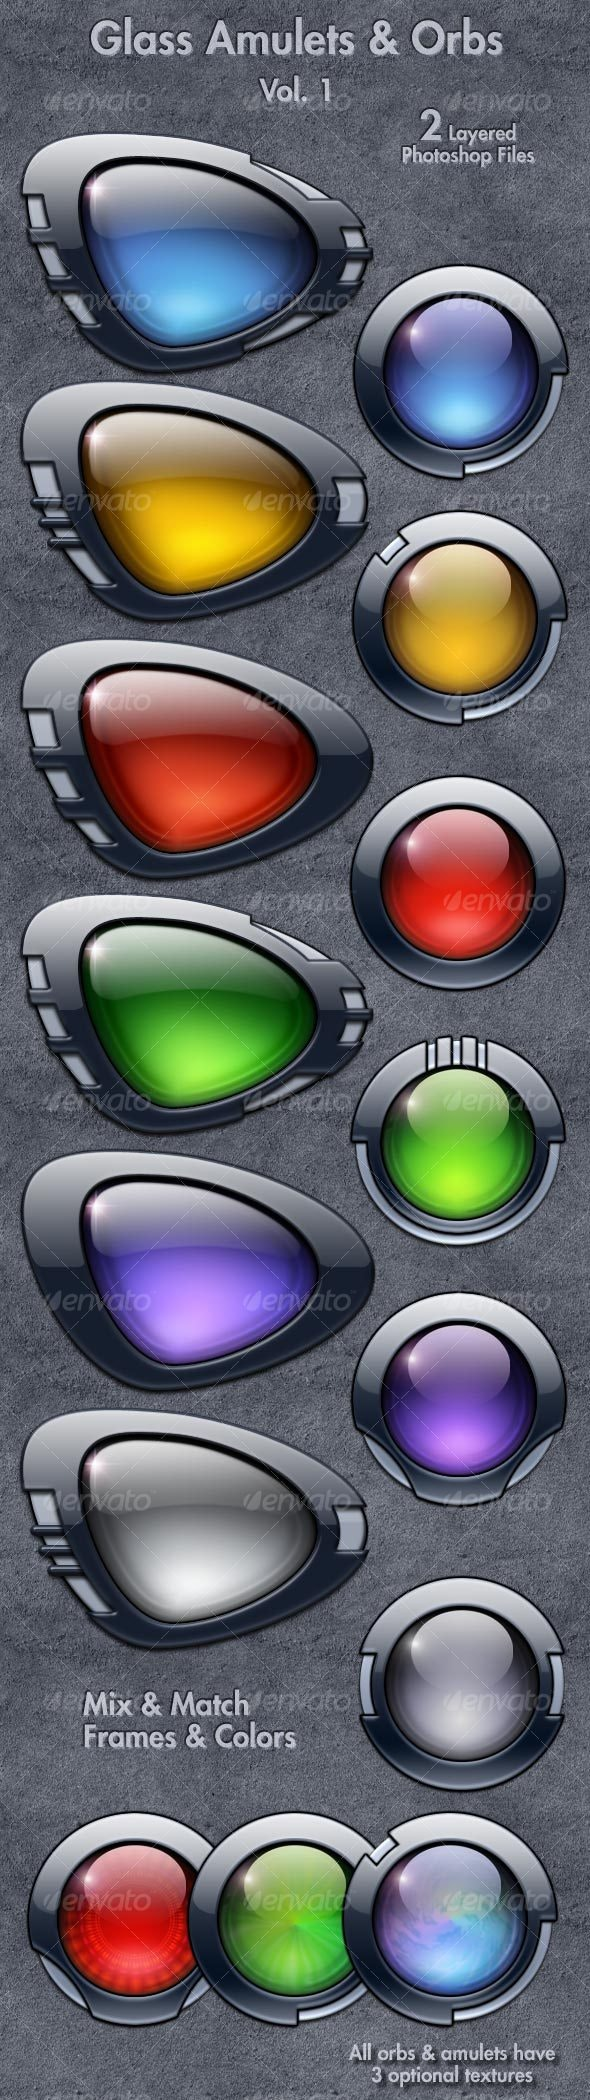 Glass Amulets & Orbs Vol. 1 - Web Icons